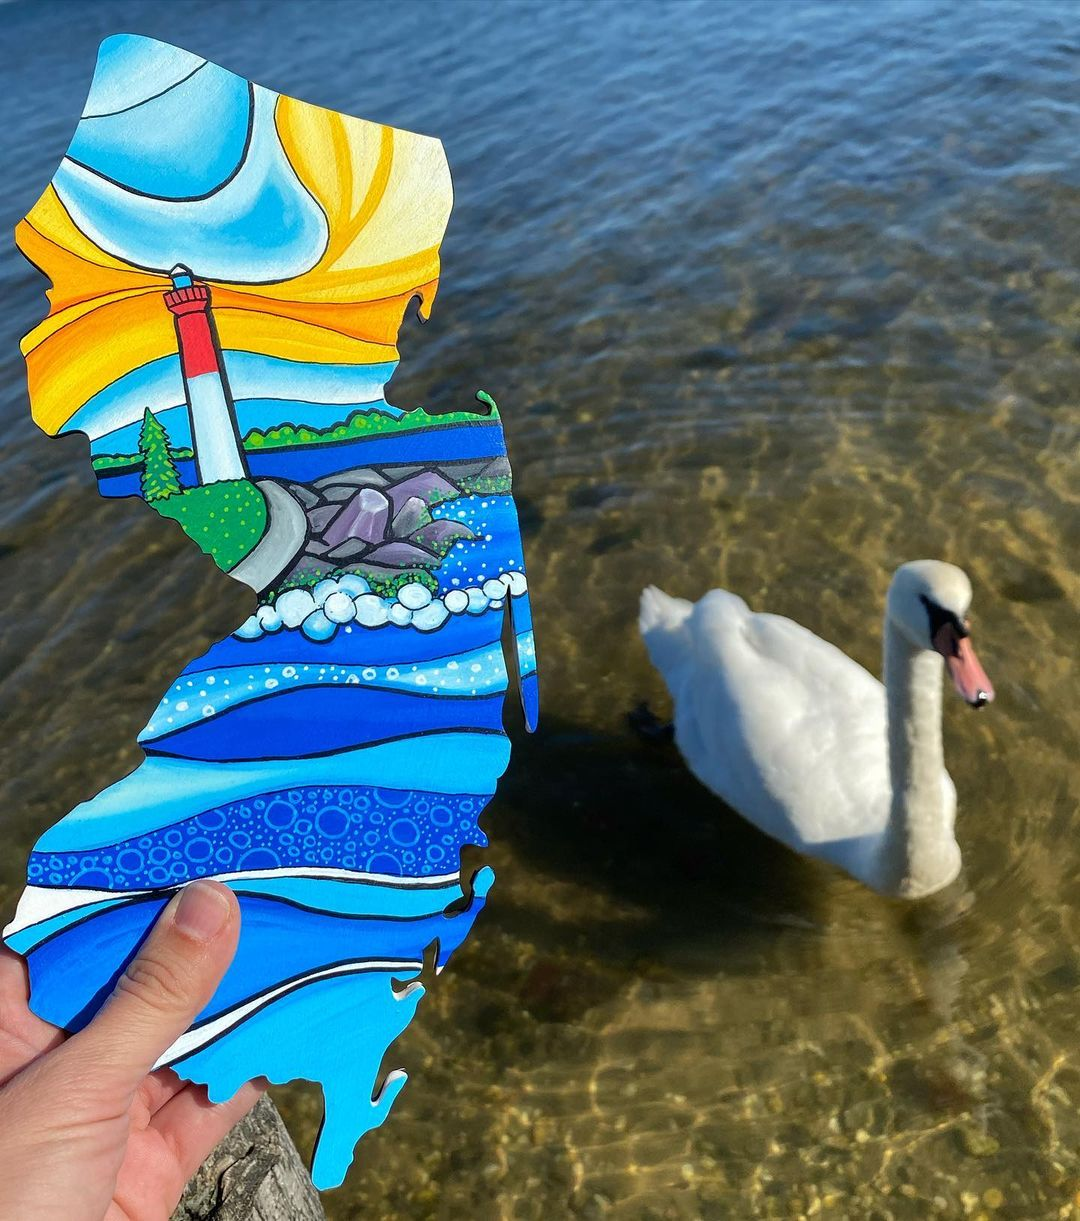 LBI  When a swan comes to photobomb your art—RUN!  Moments after taking this photo t…